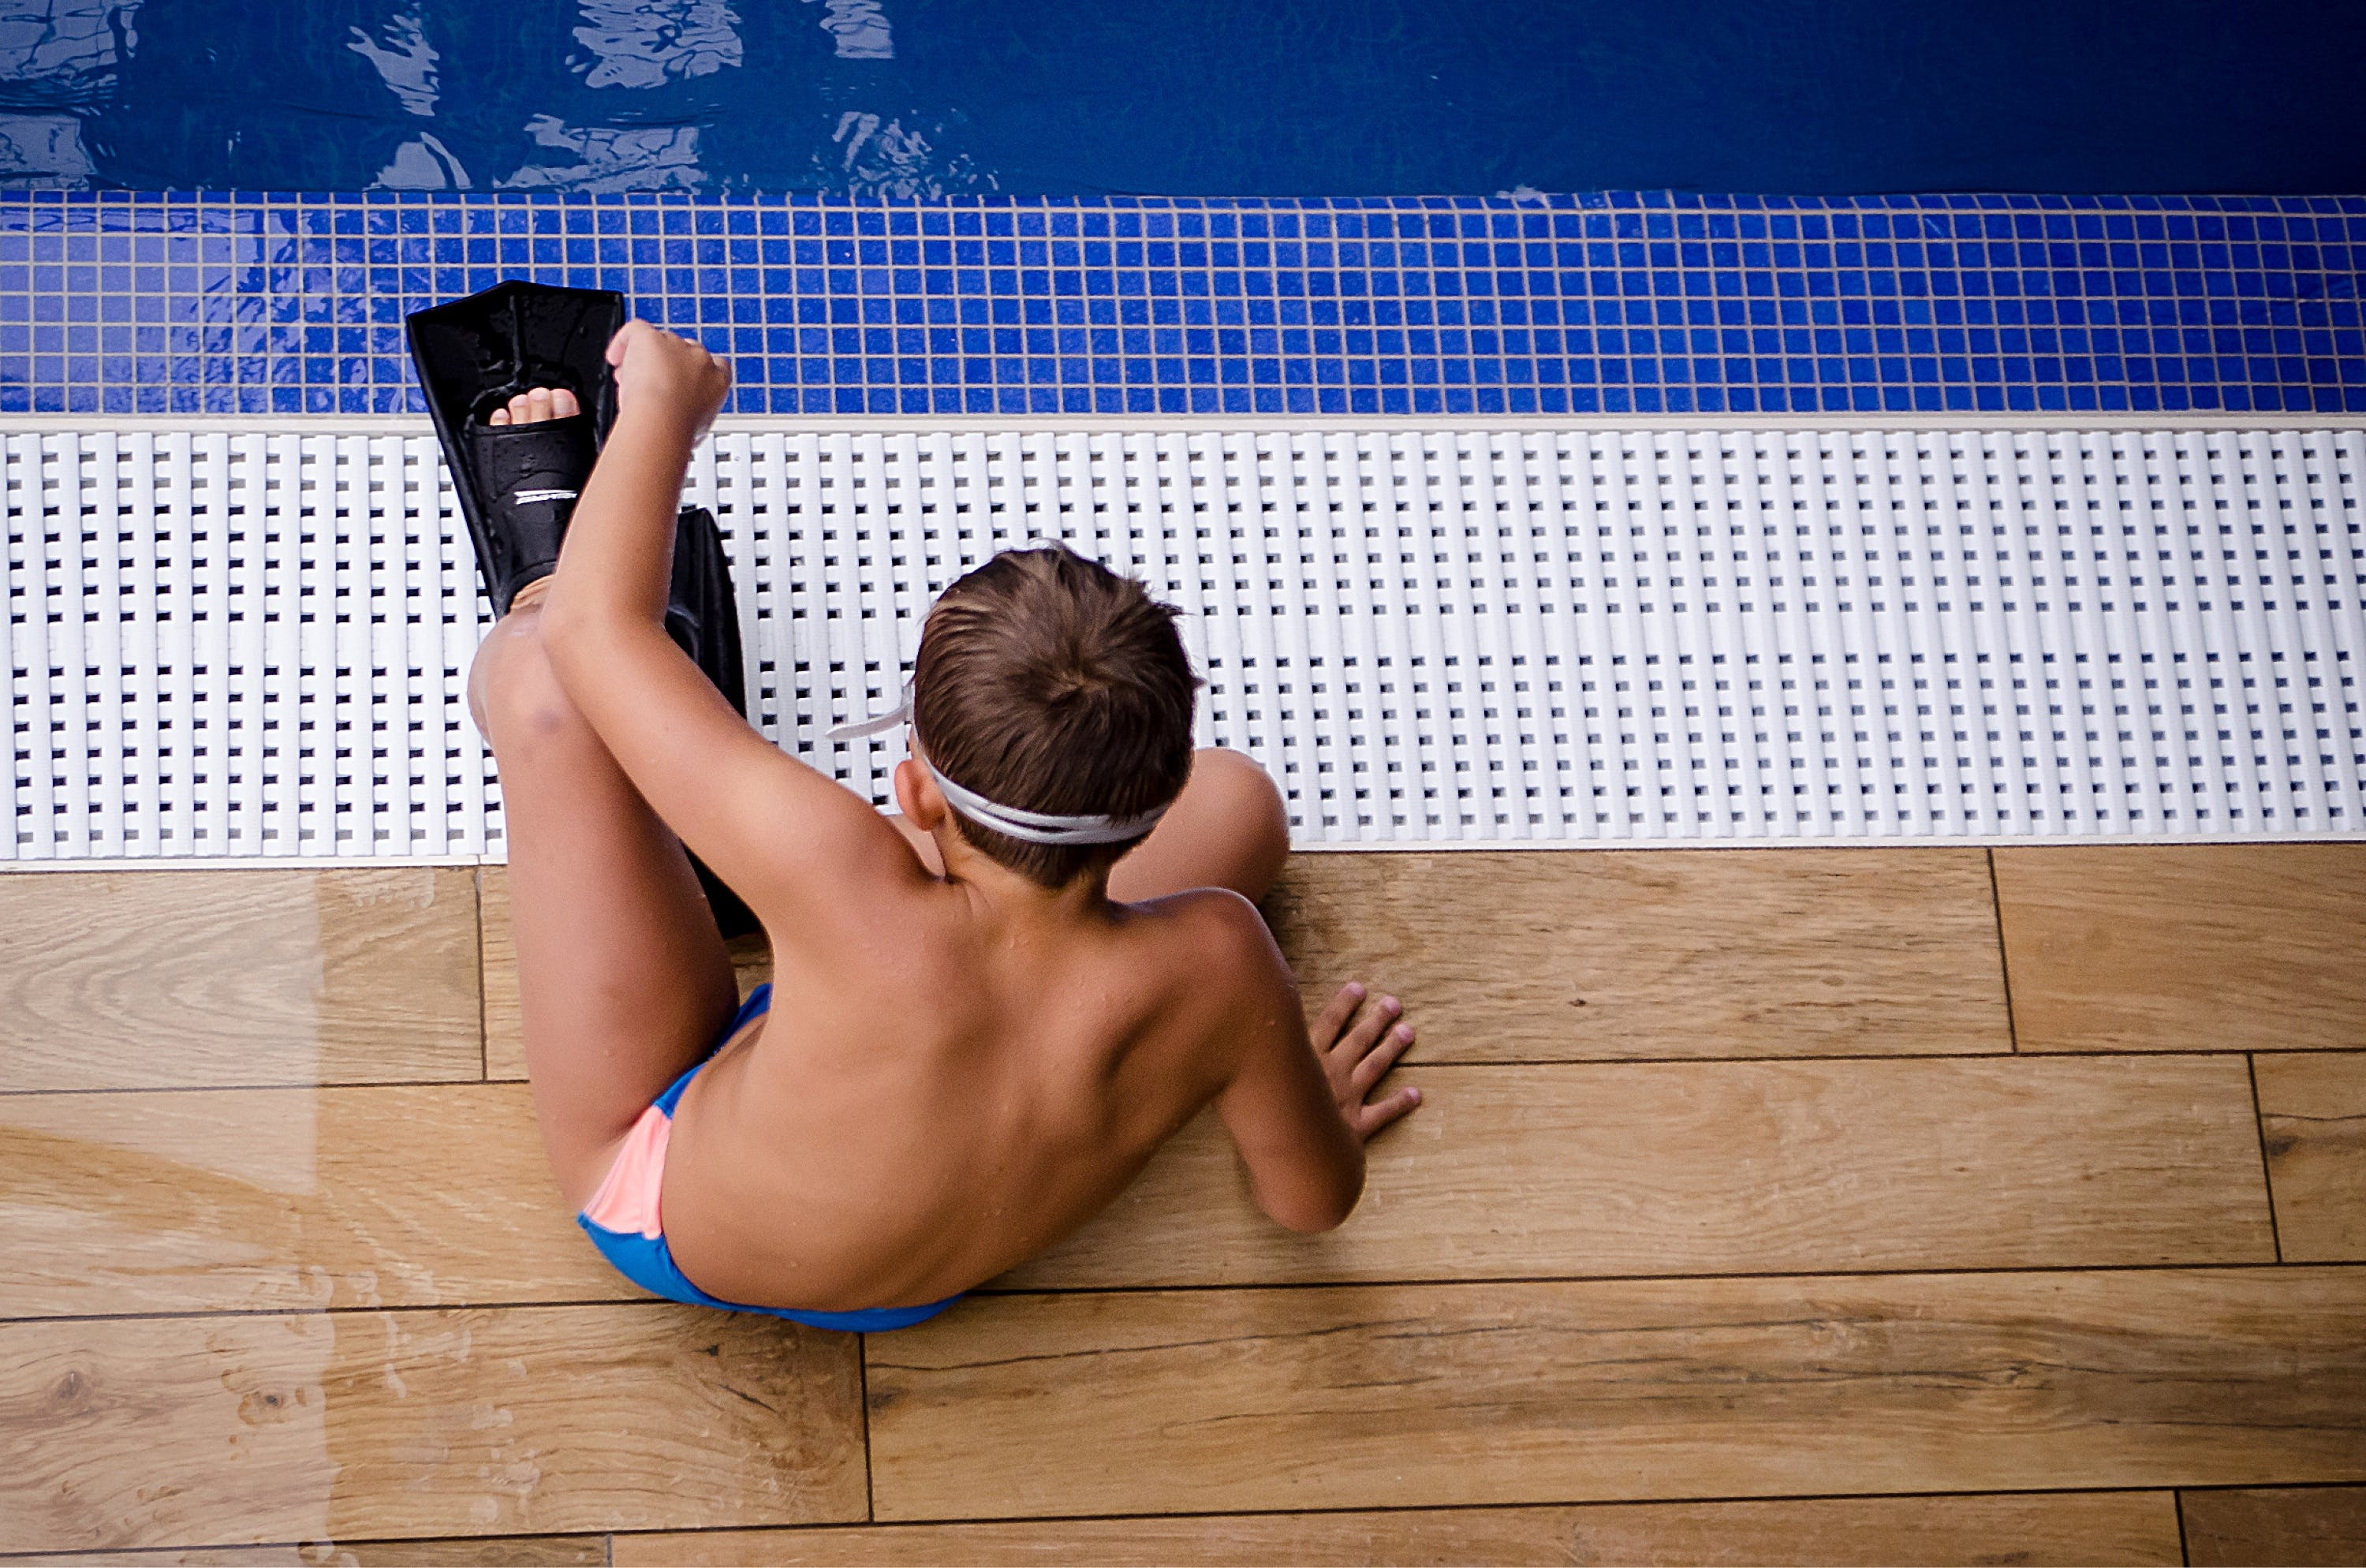 Boy Sitting Near Swimming Pool